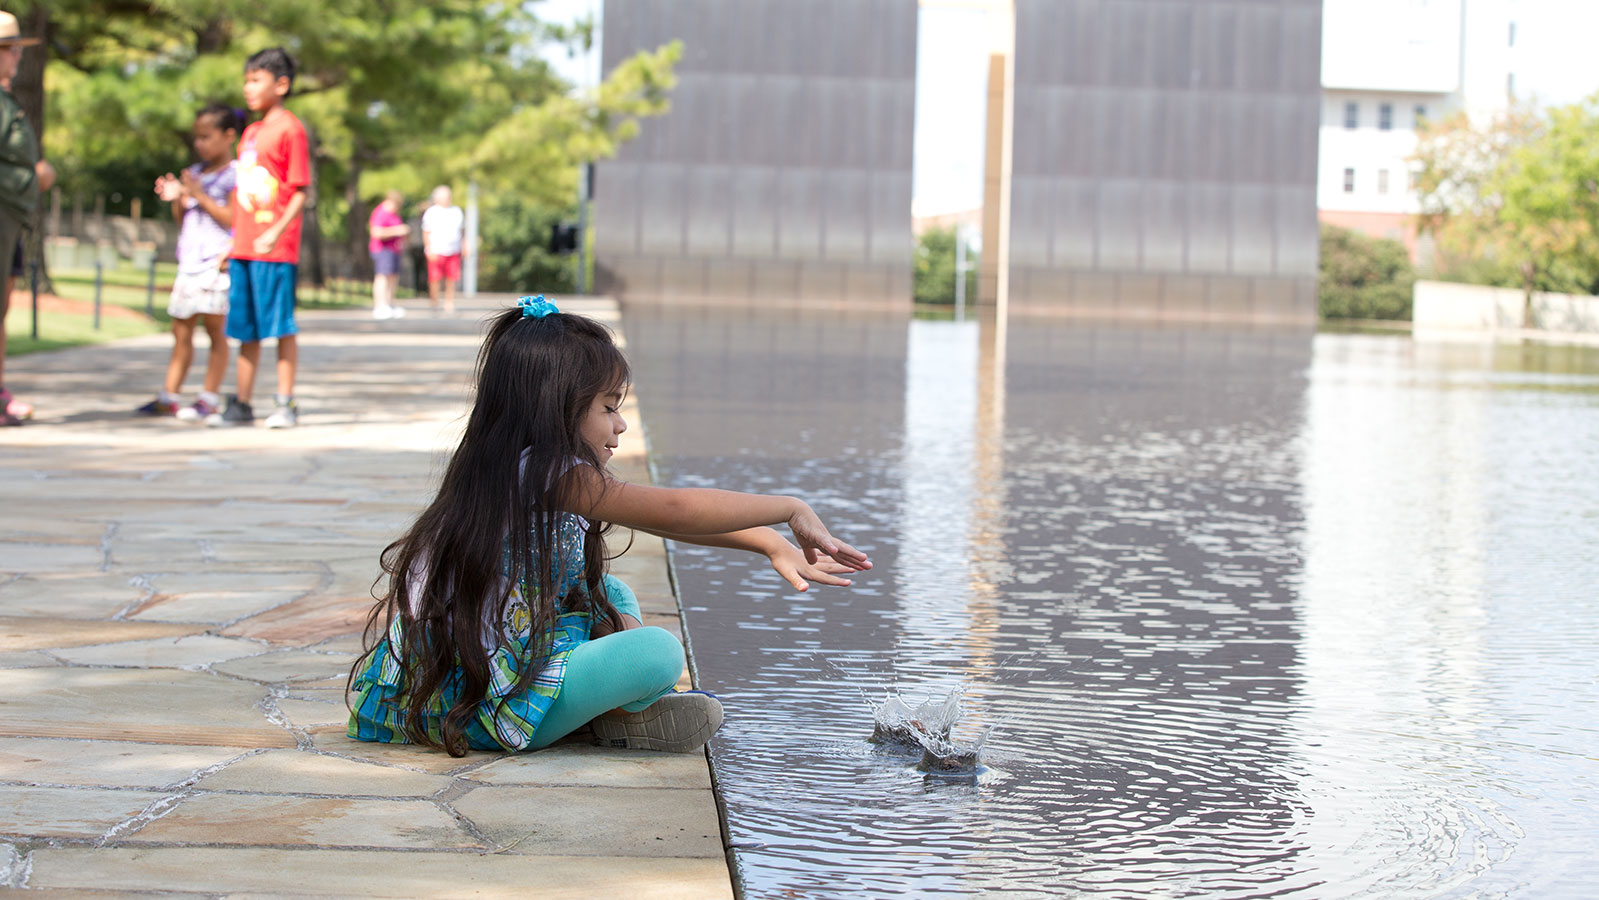 A girl plays in the reflecting pool at the Oklahoma City National Memorial